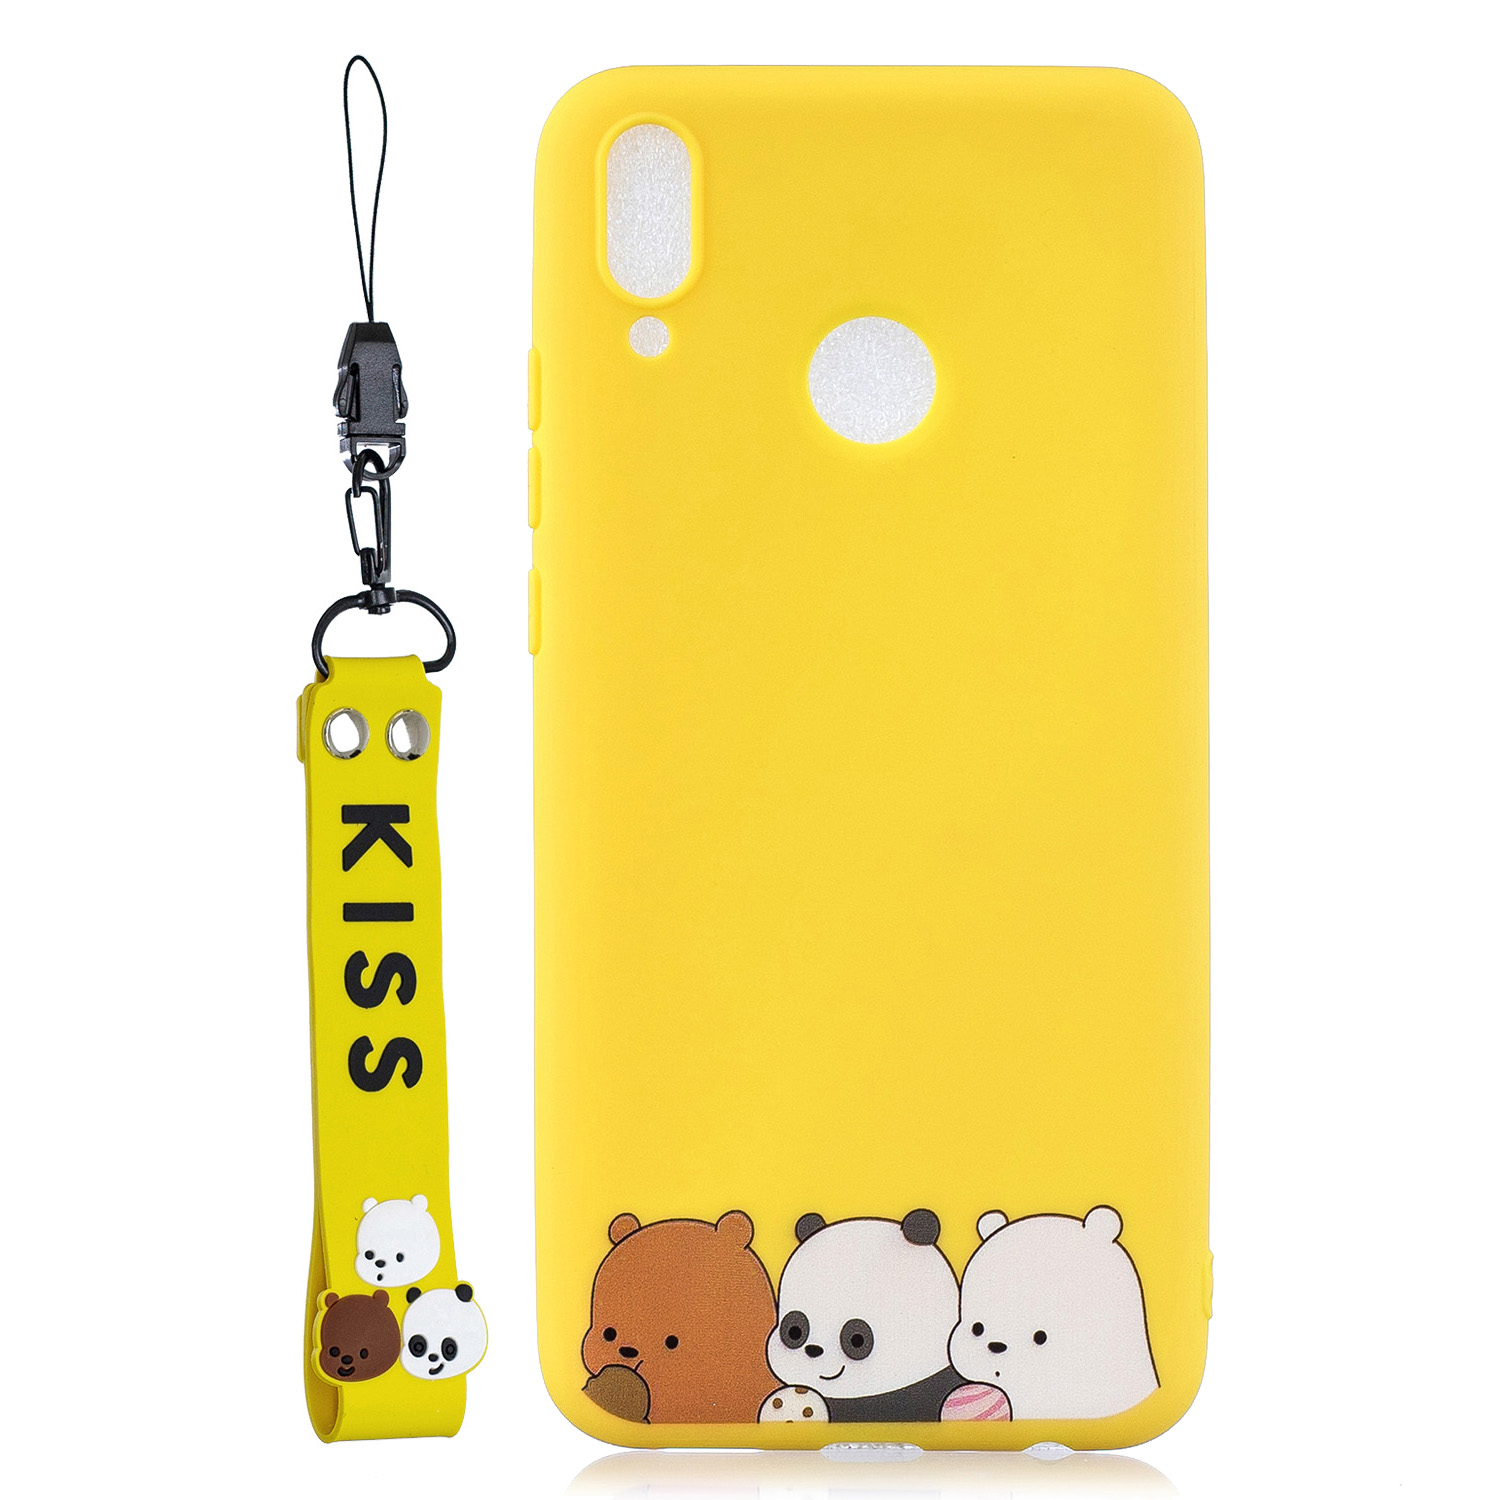 For HUAWEI Y9 2019 Cartoon Lovely Coloured Painted Soft TPU Back Cover Non-slip Shockproof Full Protective Case with Lanyard yellow